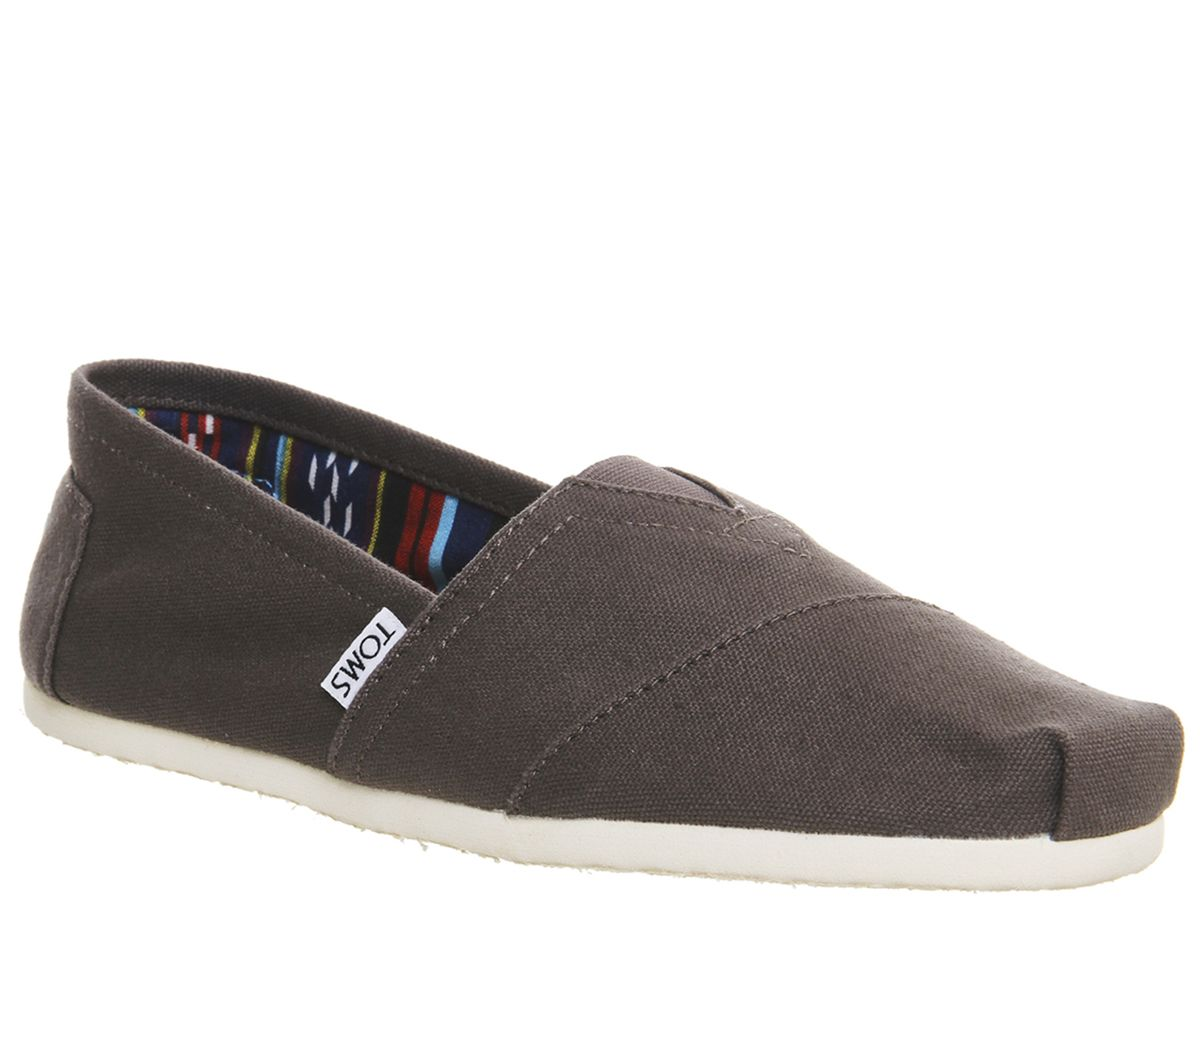 8a537838ae Toms Classic Slip Ons Ash Canvas - Casual